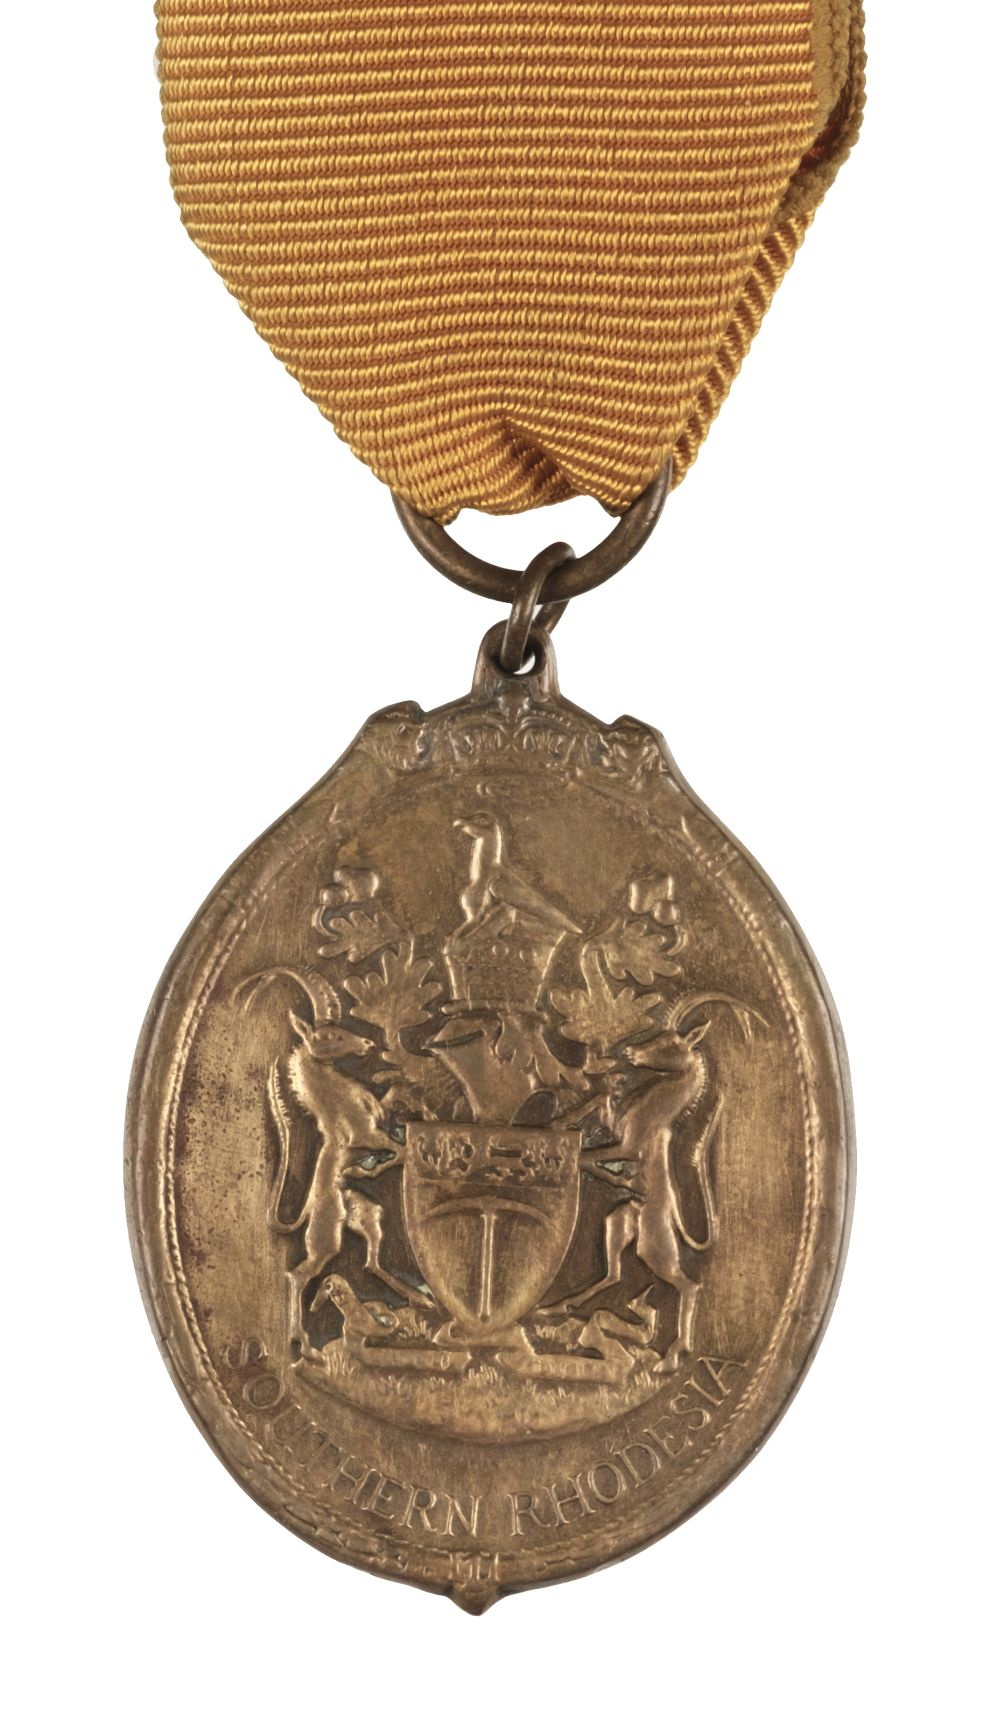 * Southern Rhodesia. Badge of the Certificate of Honour